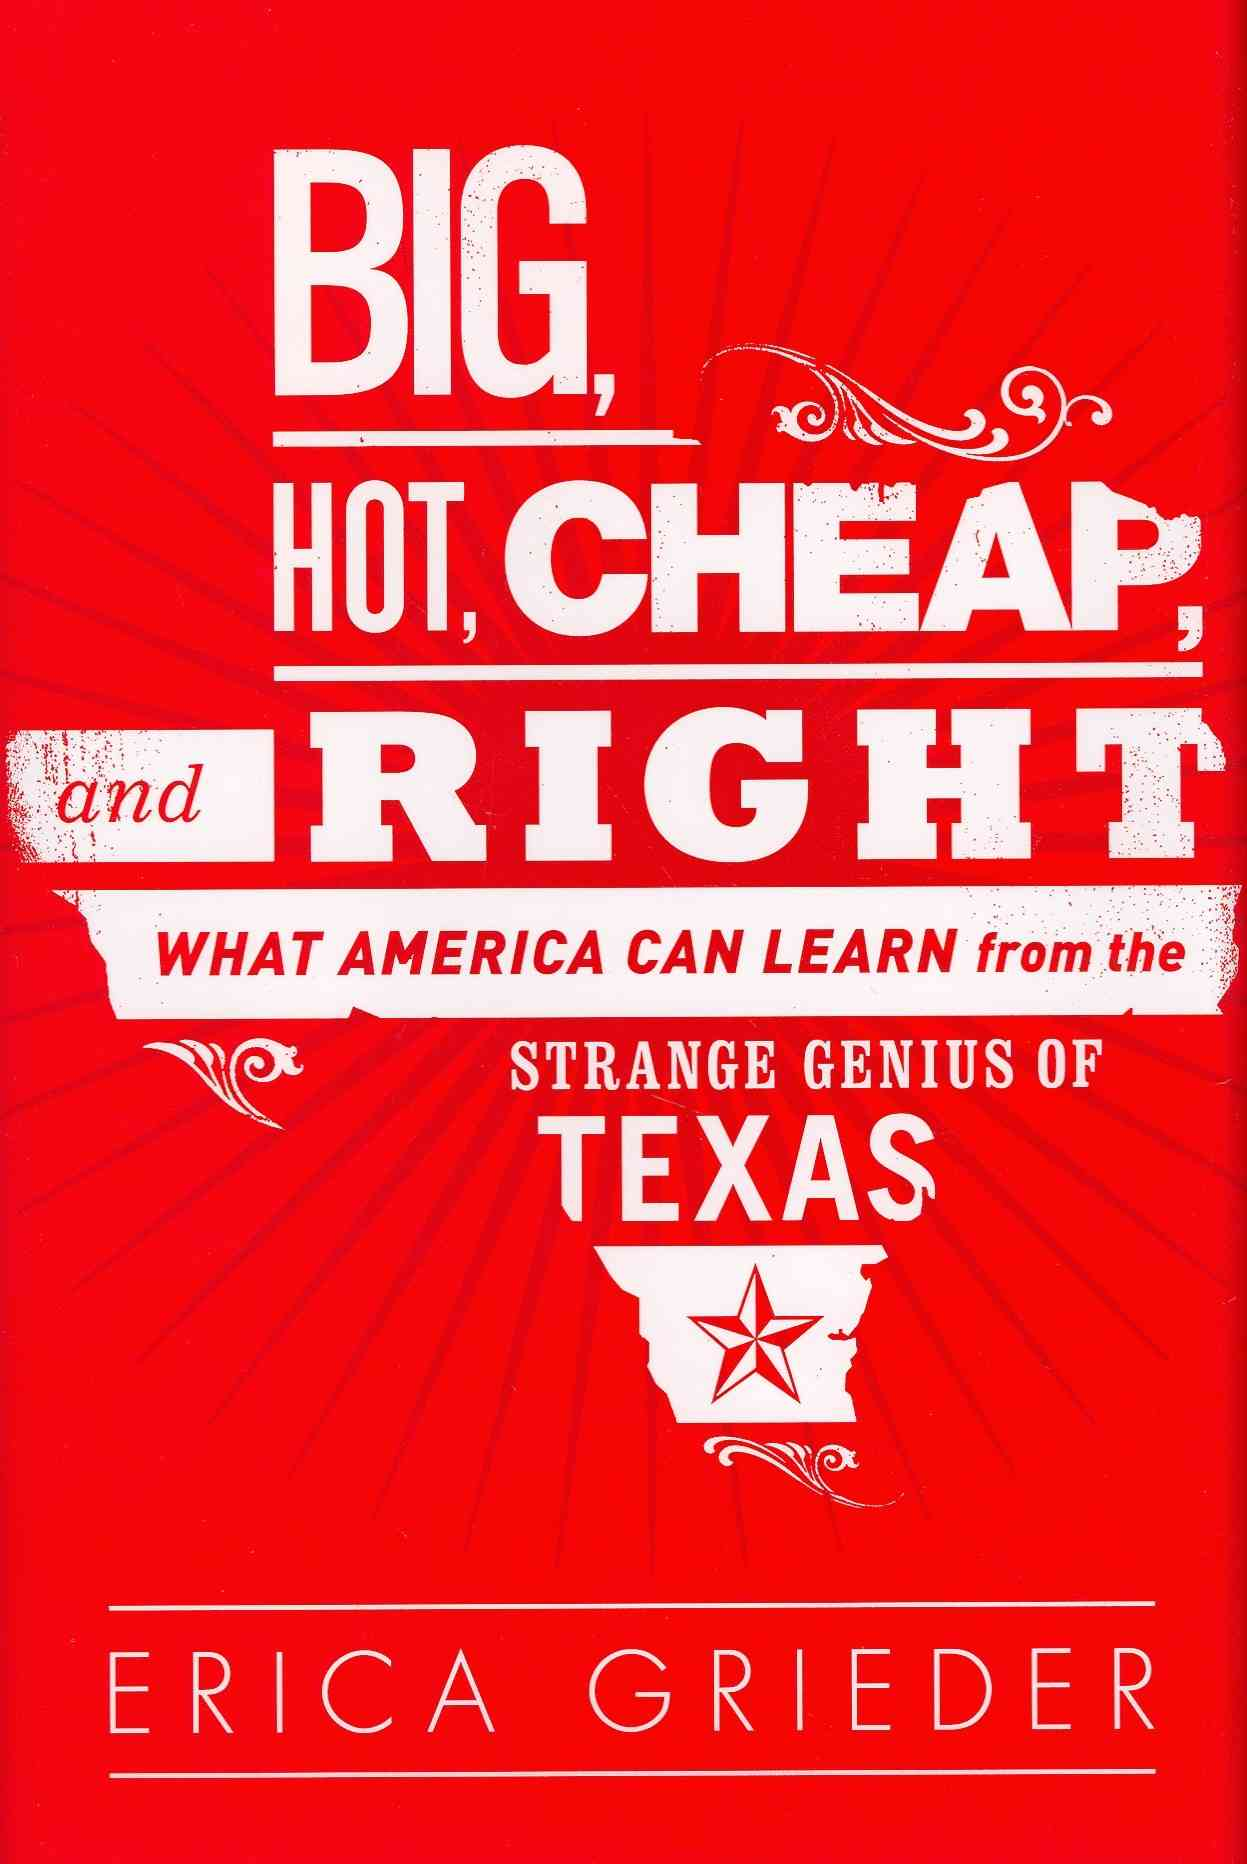 Big, Hot, Cheap, and Right: What America Can Learn from the Strange Genius of Texas (Hardcover)